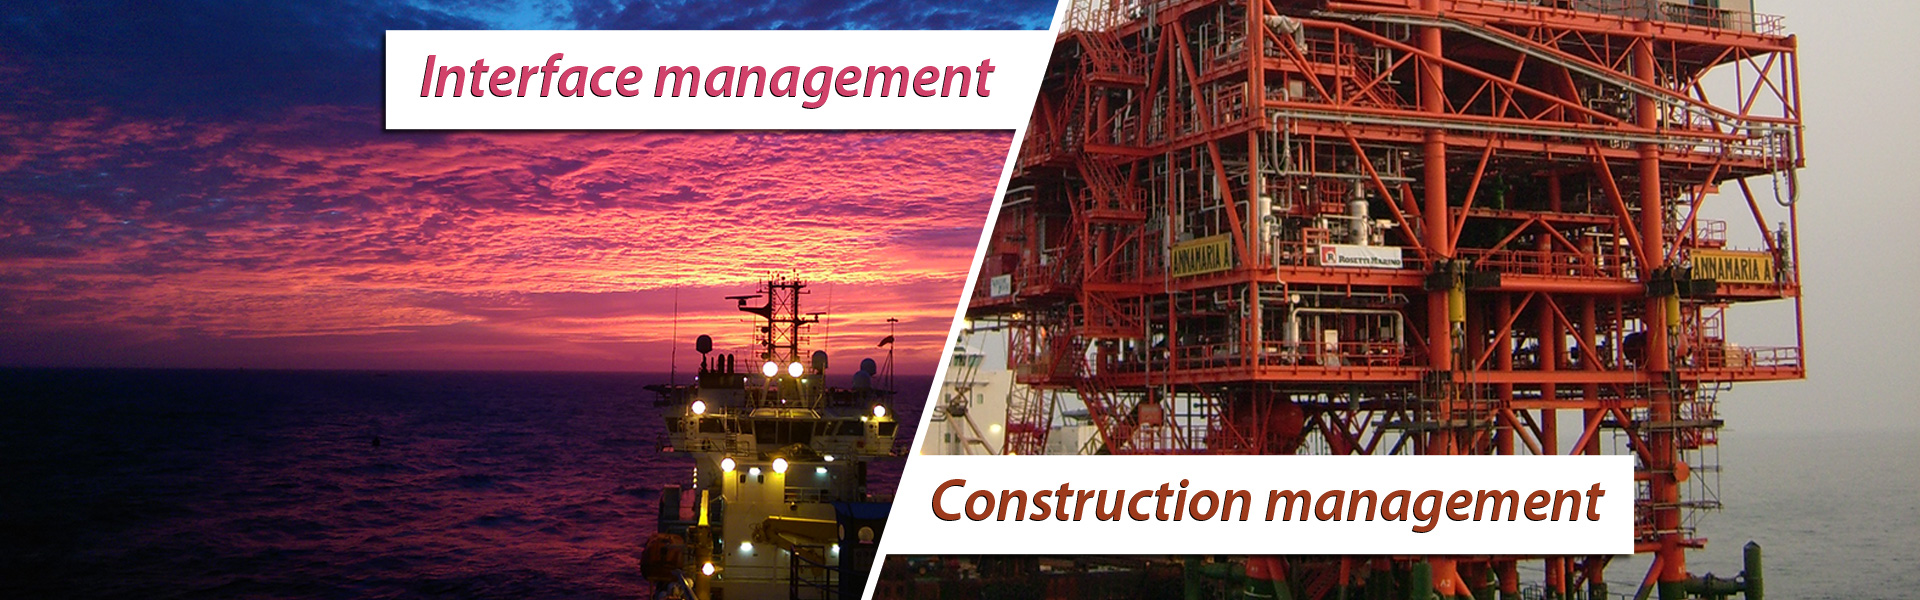 Interface management / Construction management